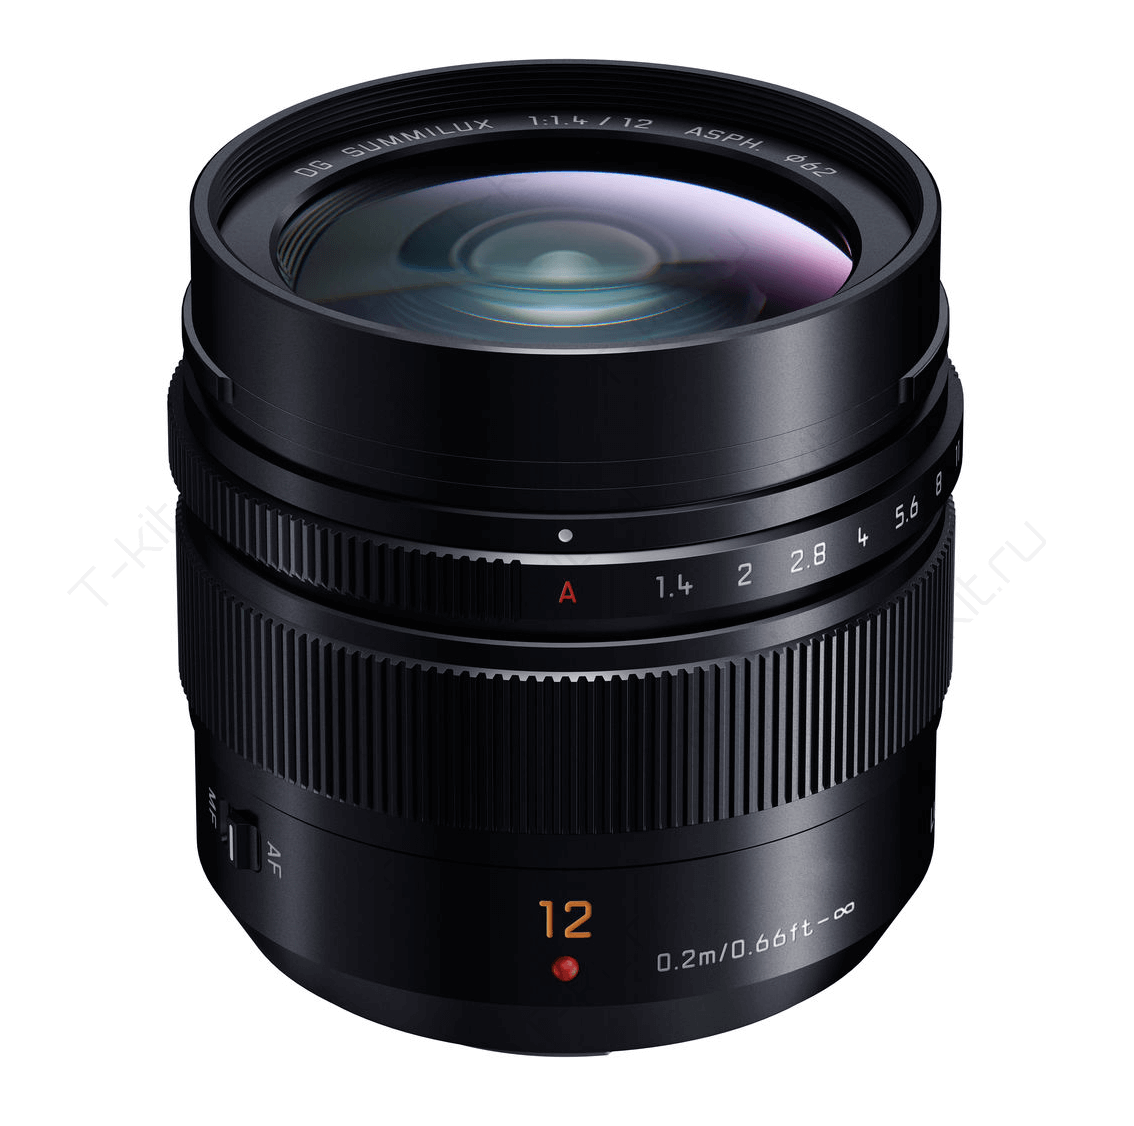 Panasonic 14-140mm вид сбоку